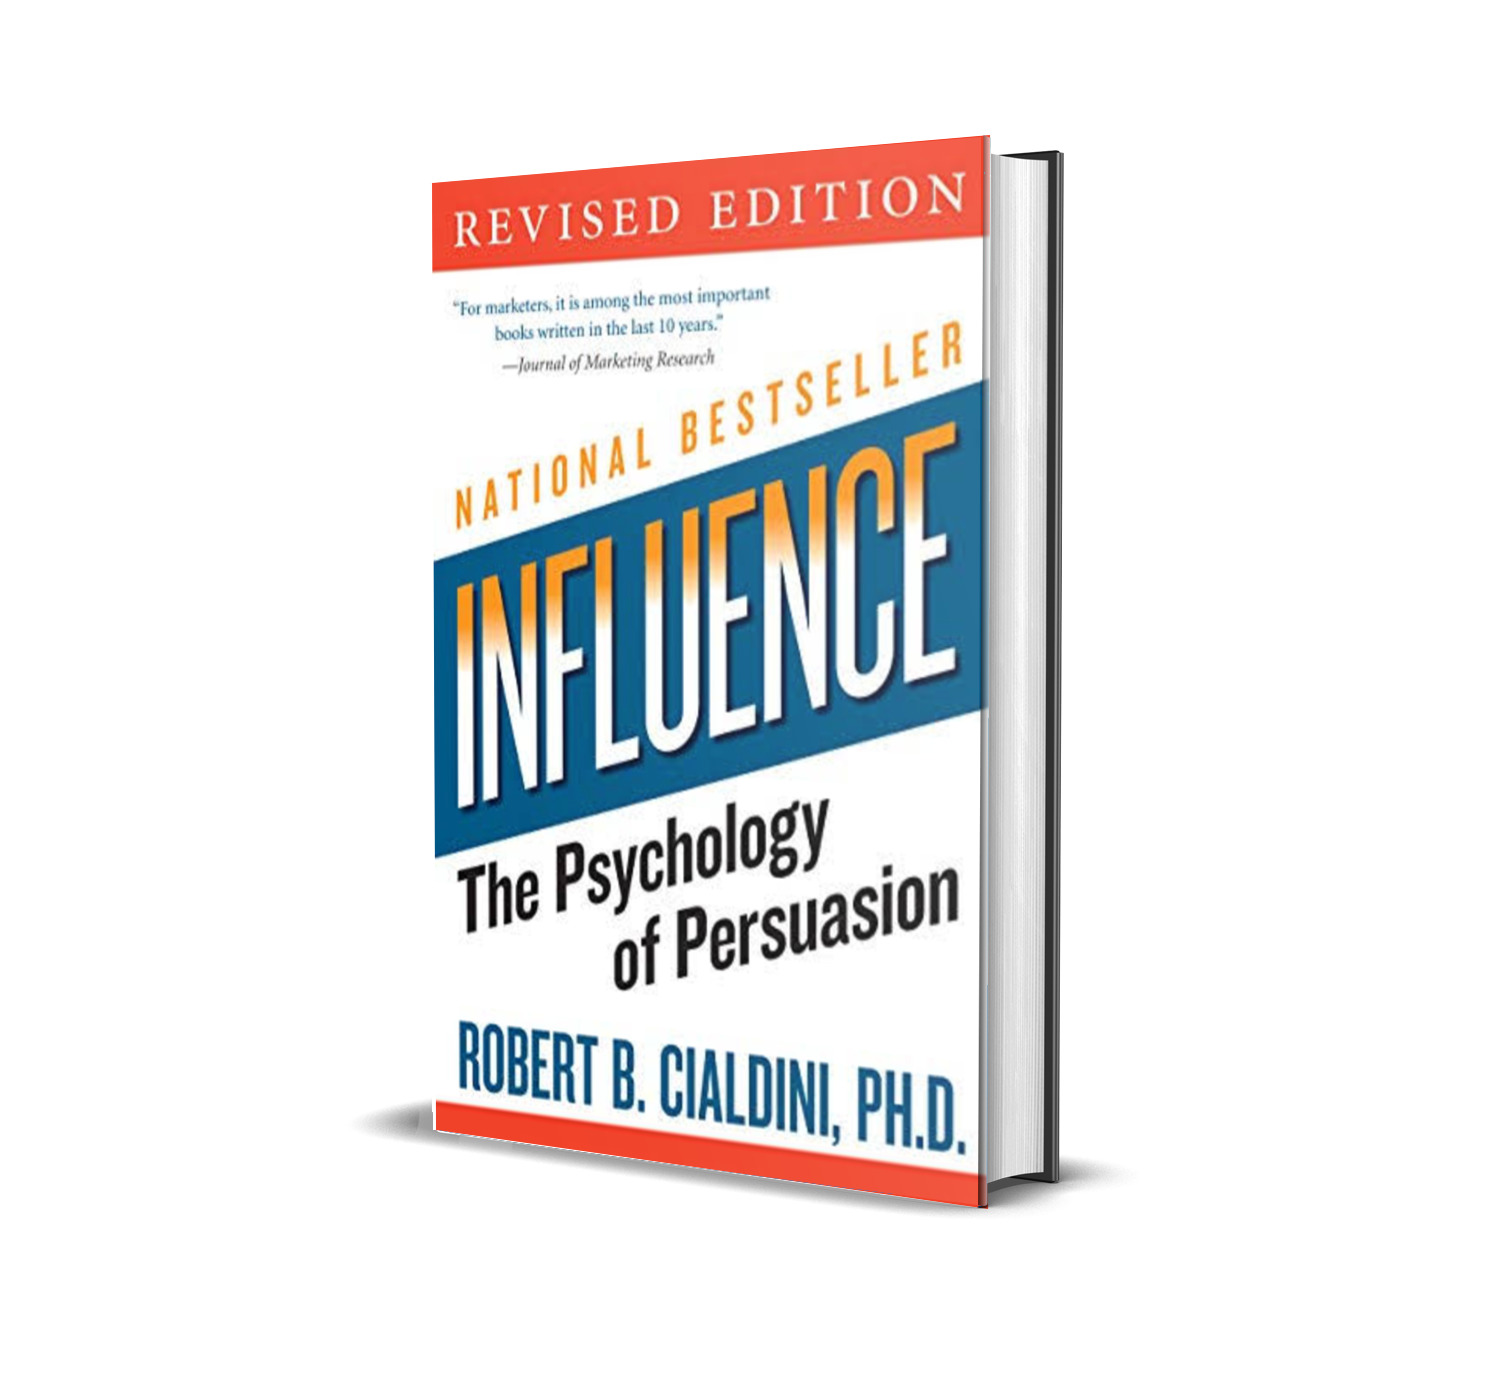 Influence the psychology of persuasion- Robert Cialdini